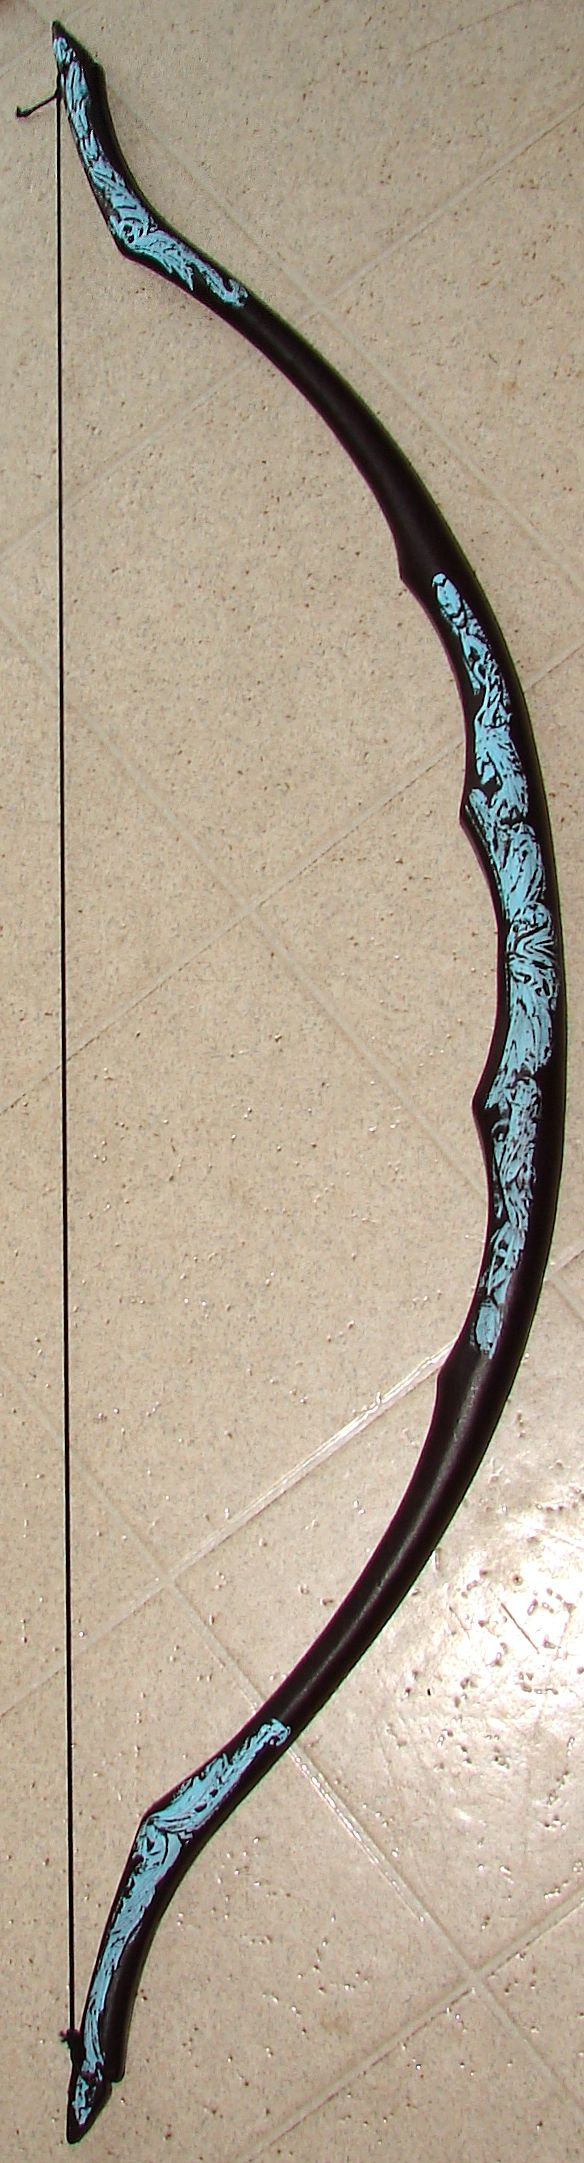 Lord of the Rings Elven Bow by FantasyStock.deviantart.com on @DeviantArt